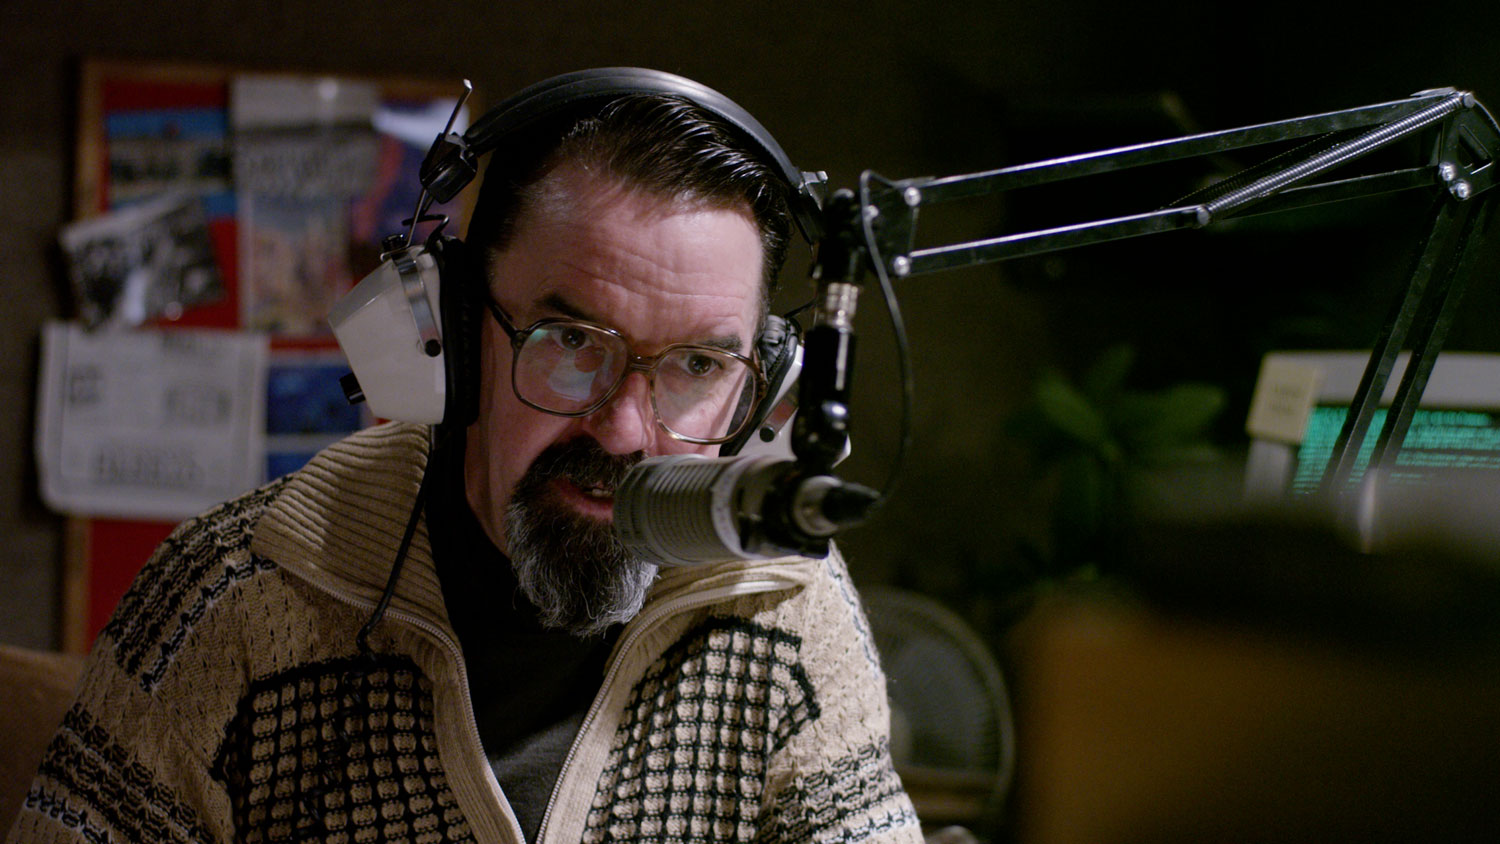 a man in a radio studio with a headset on